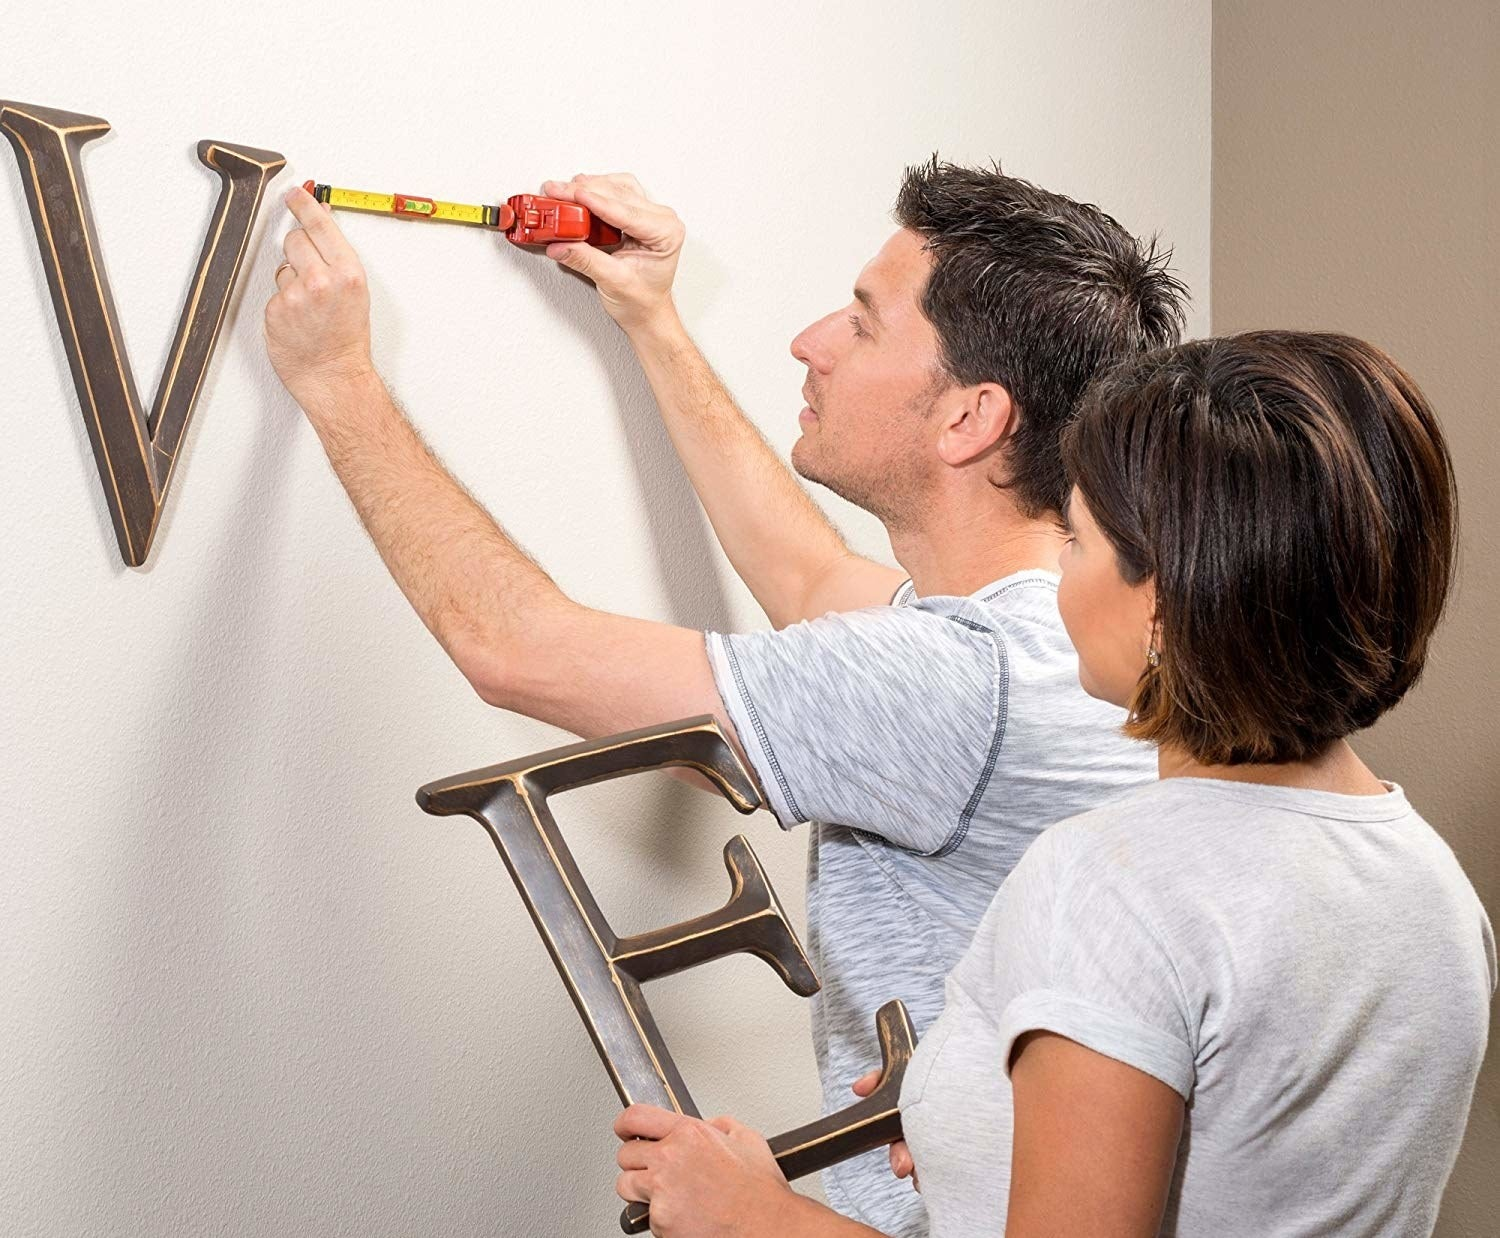 A person using the tool to hang a piece of wall art